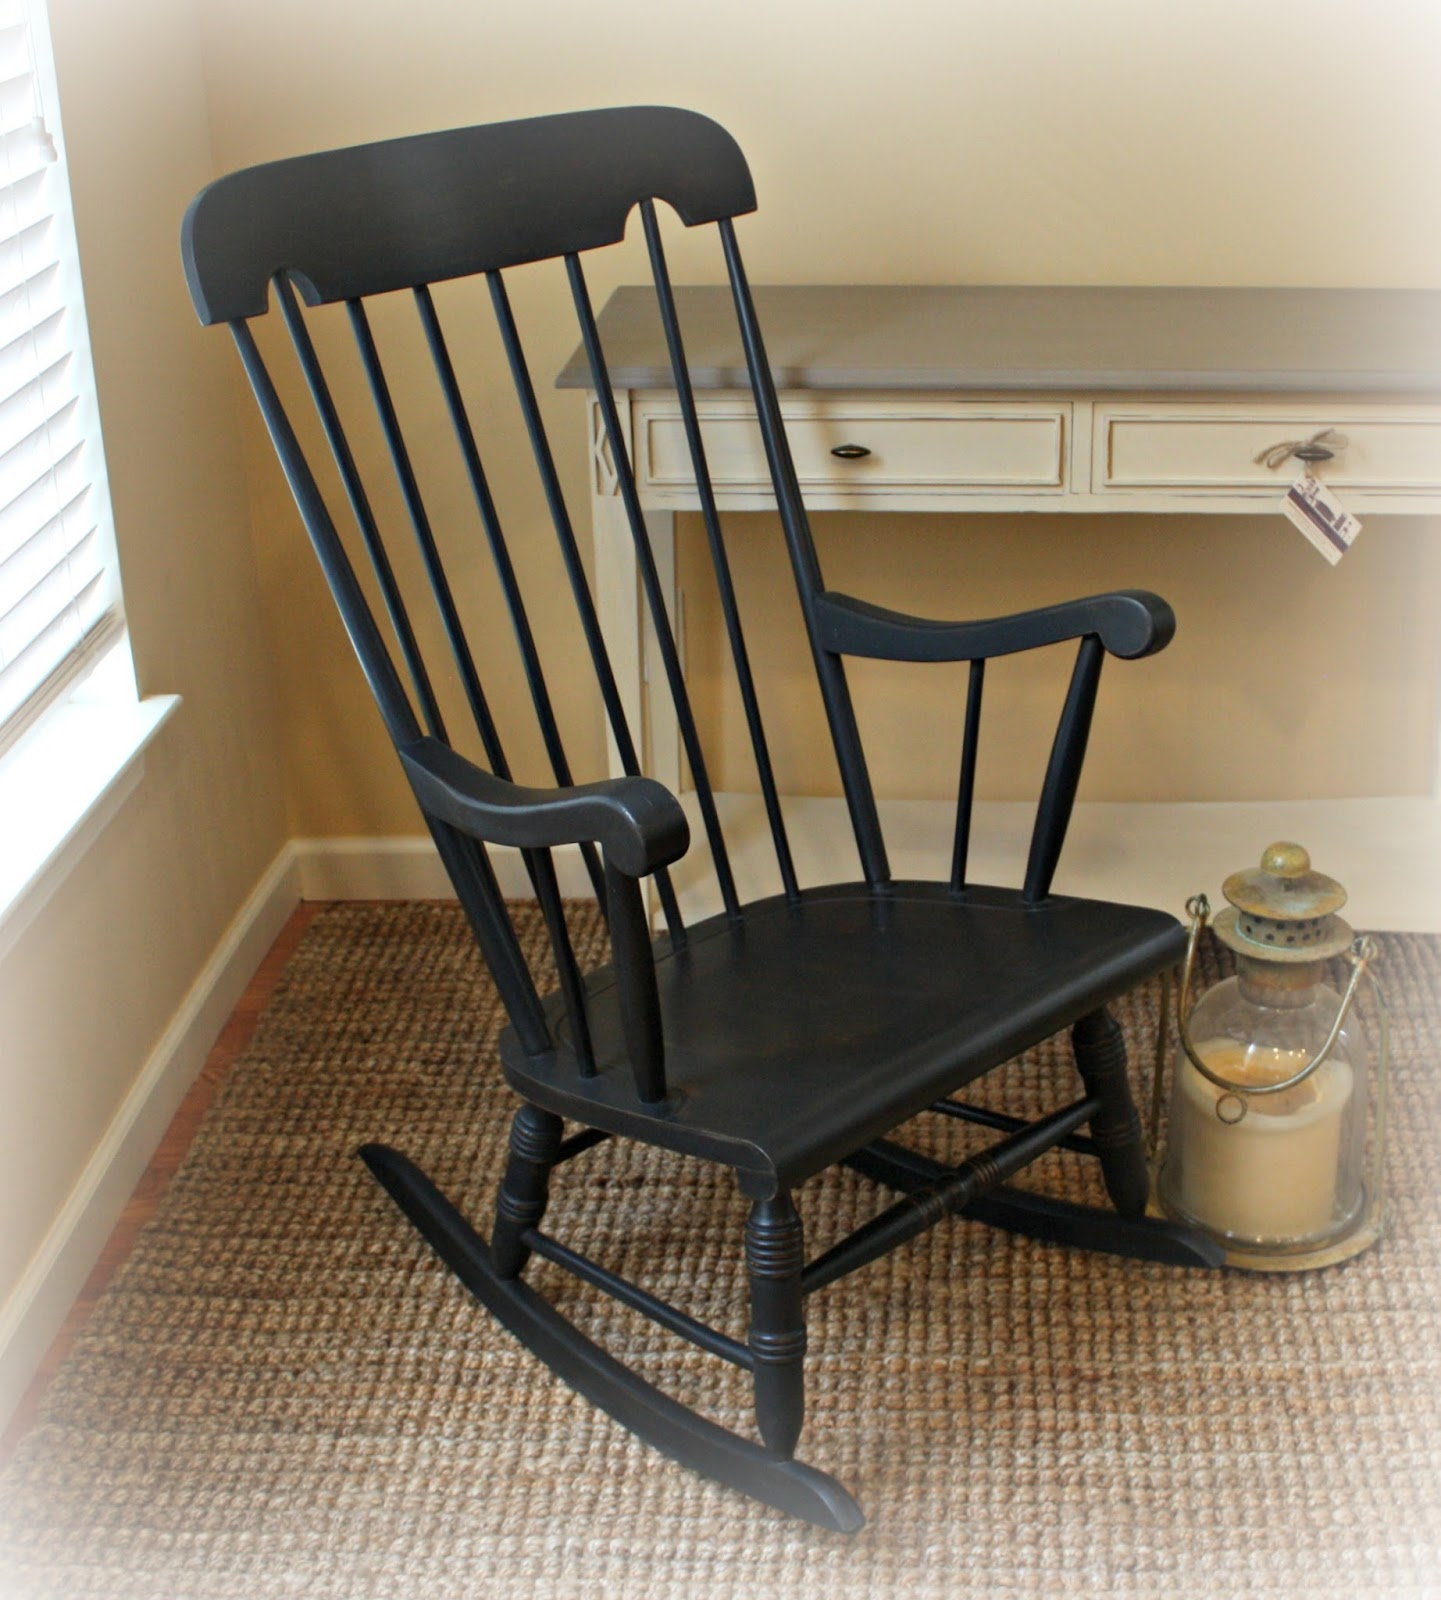 Retro Rocking Chair Slip Covered Chairs Vintage With Damaged Finish Gets A New Look